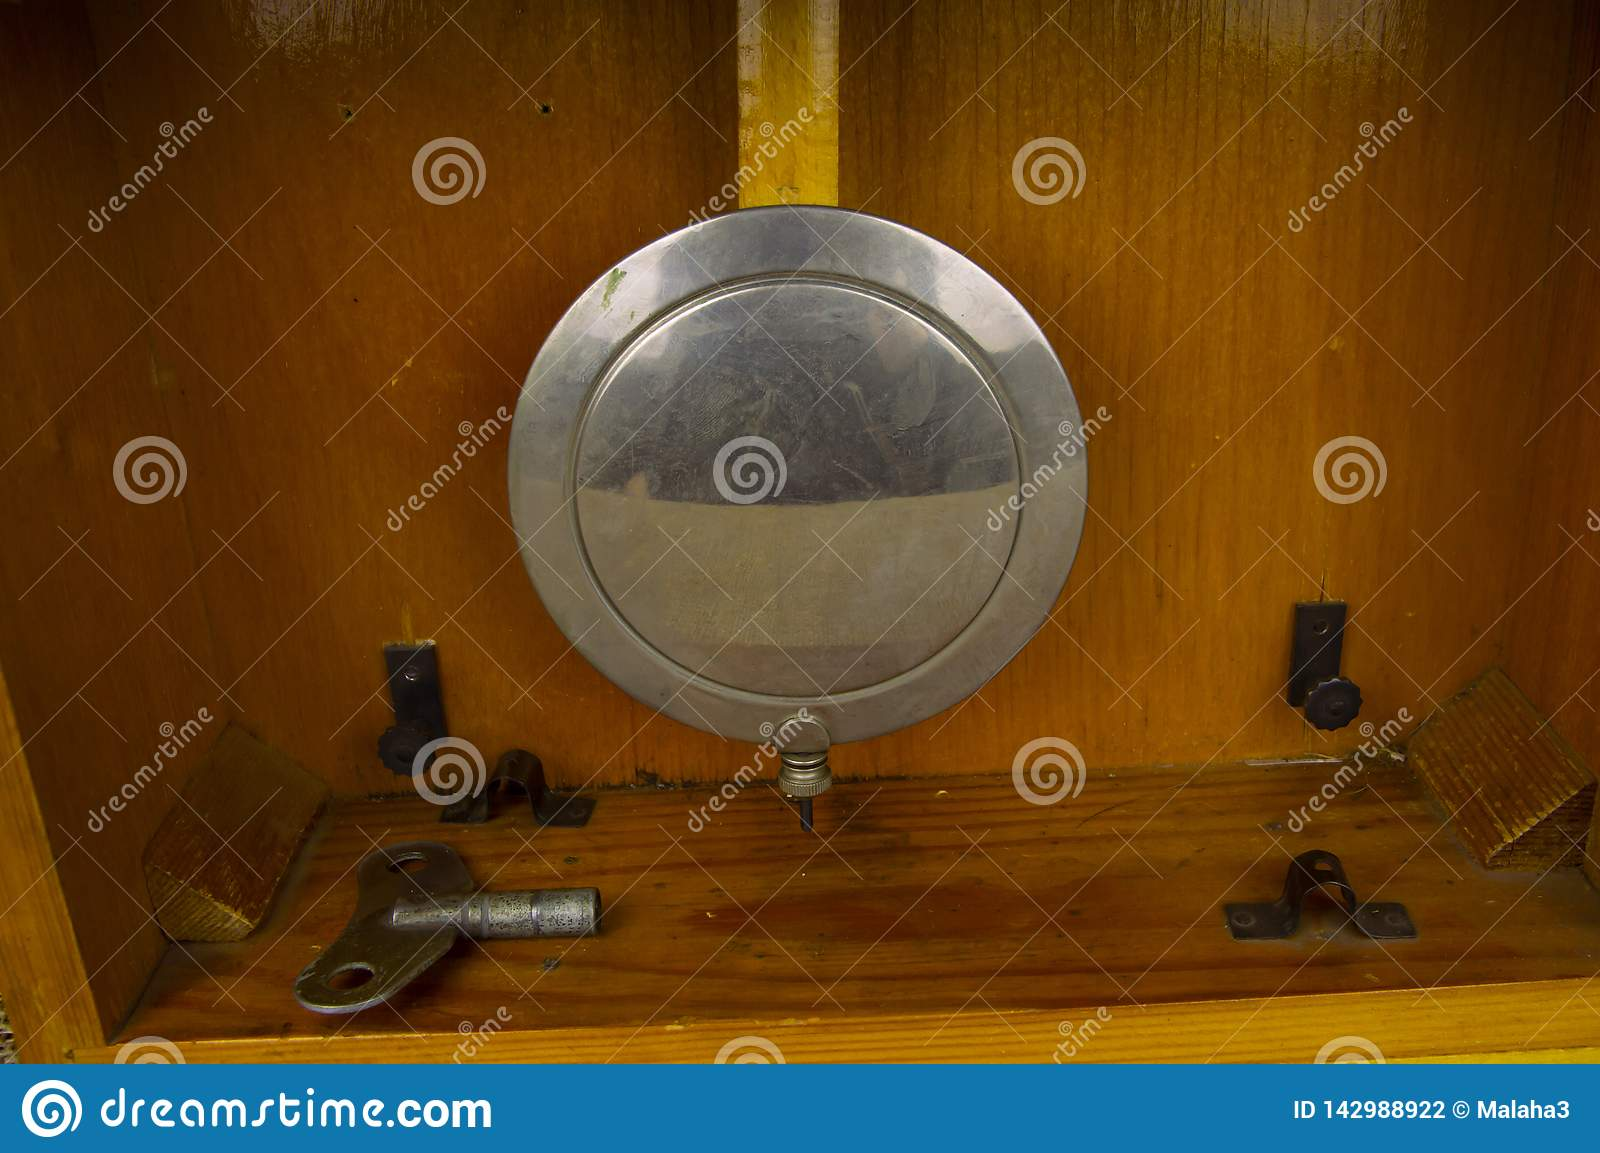 Pendulum of an old clock on a wooden background